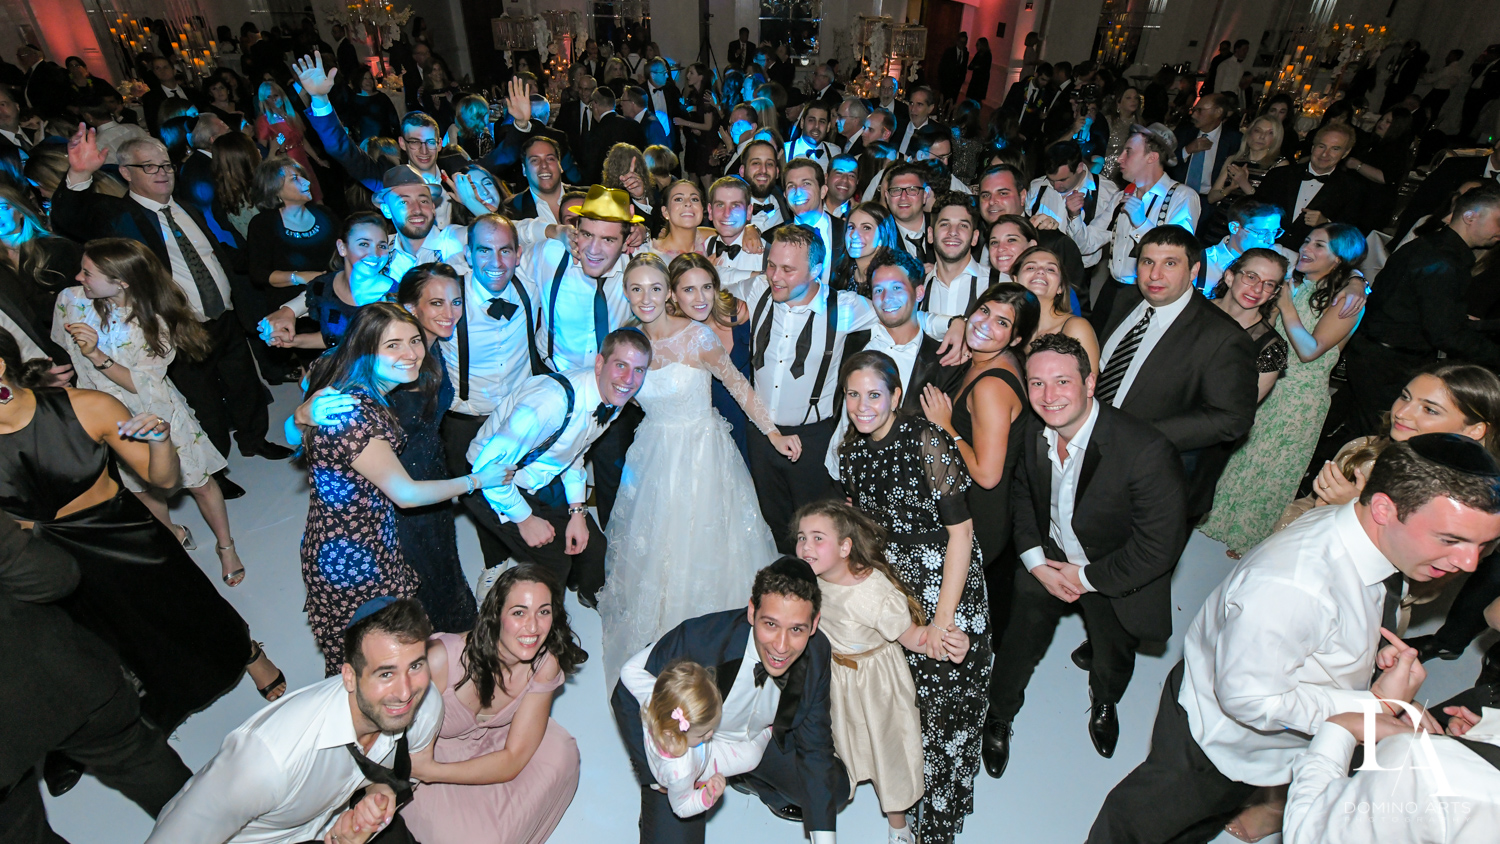 Wedding crowd shot at Lavish Flowers & Crystals Wedding at Aventura Turnberry Jewish Center by Domino Arts Photography